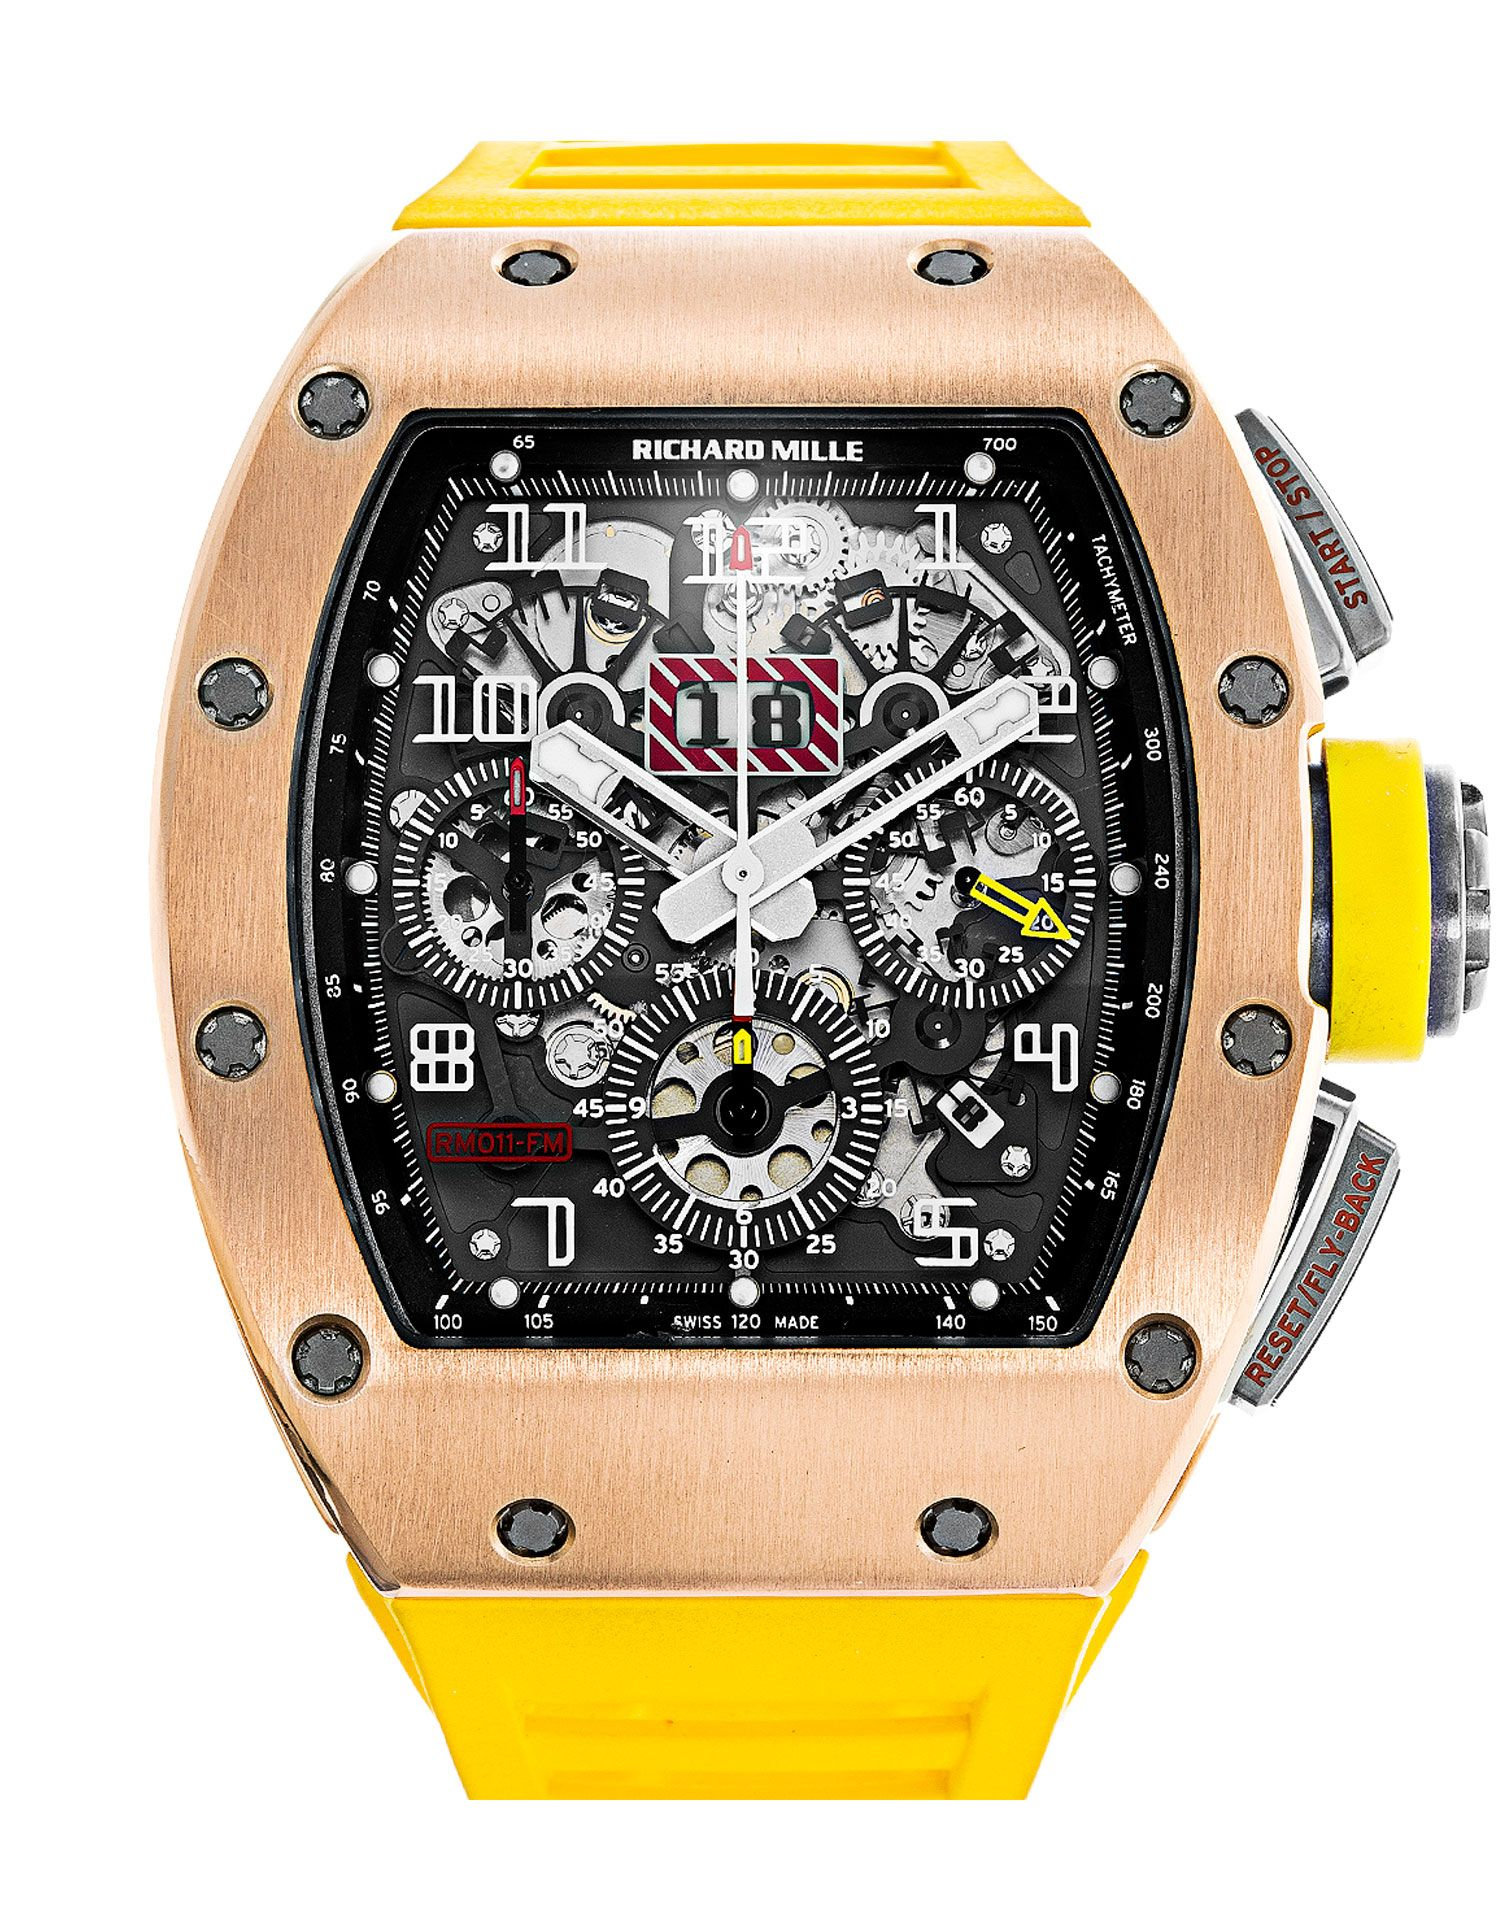 4a7ce206d79 Richard Mille RM011 AK RG Felipe Massa Watch